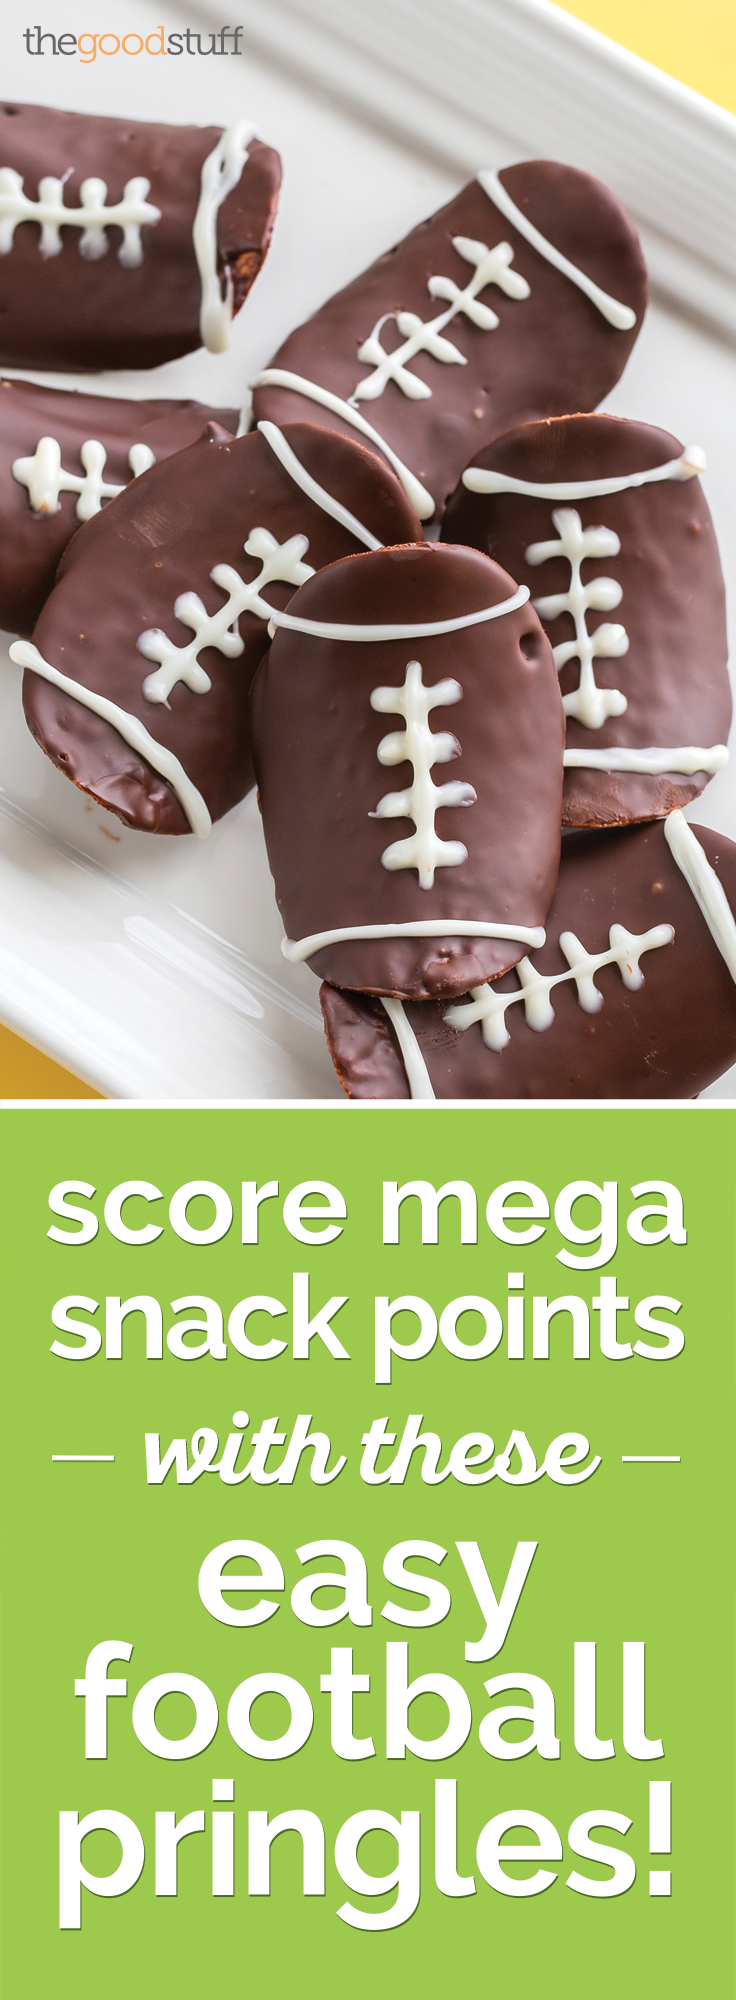 Score Mega Snack Points with These Easy Football Pringles! | thegoodstuff